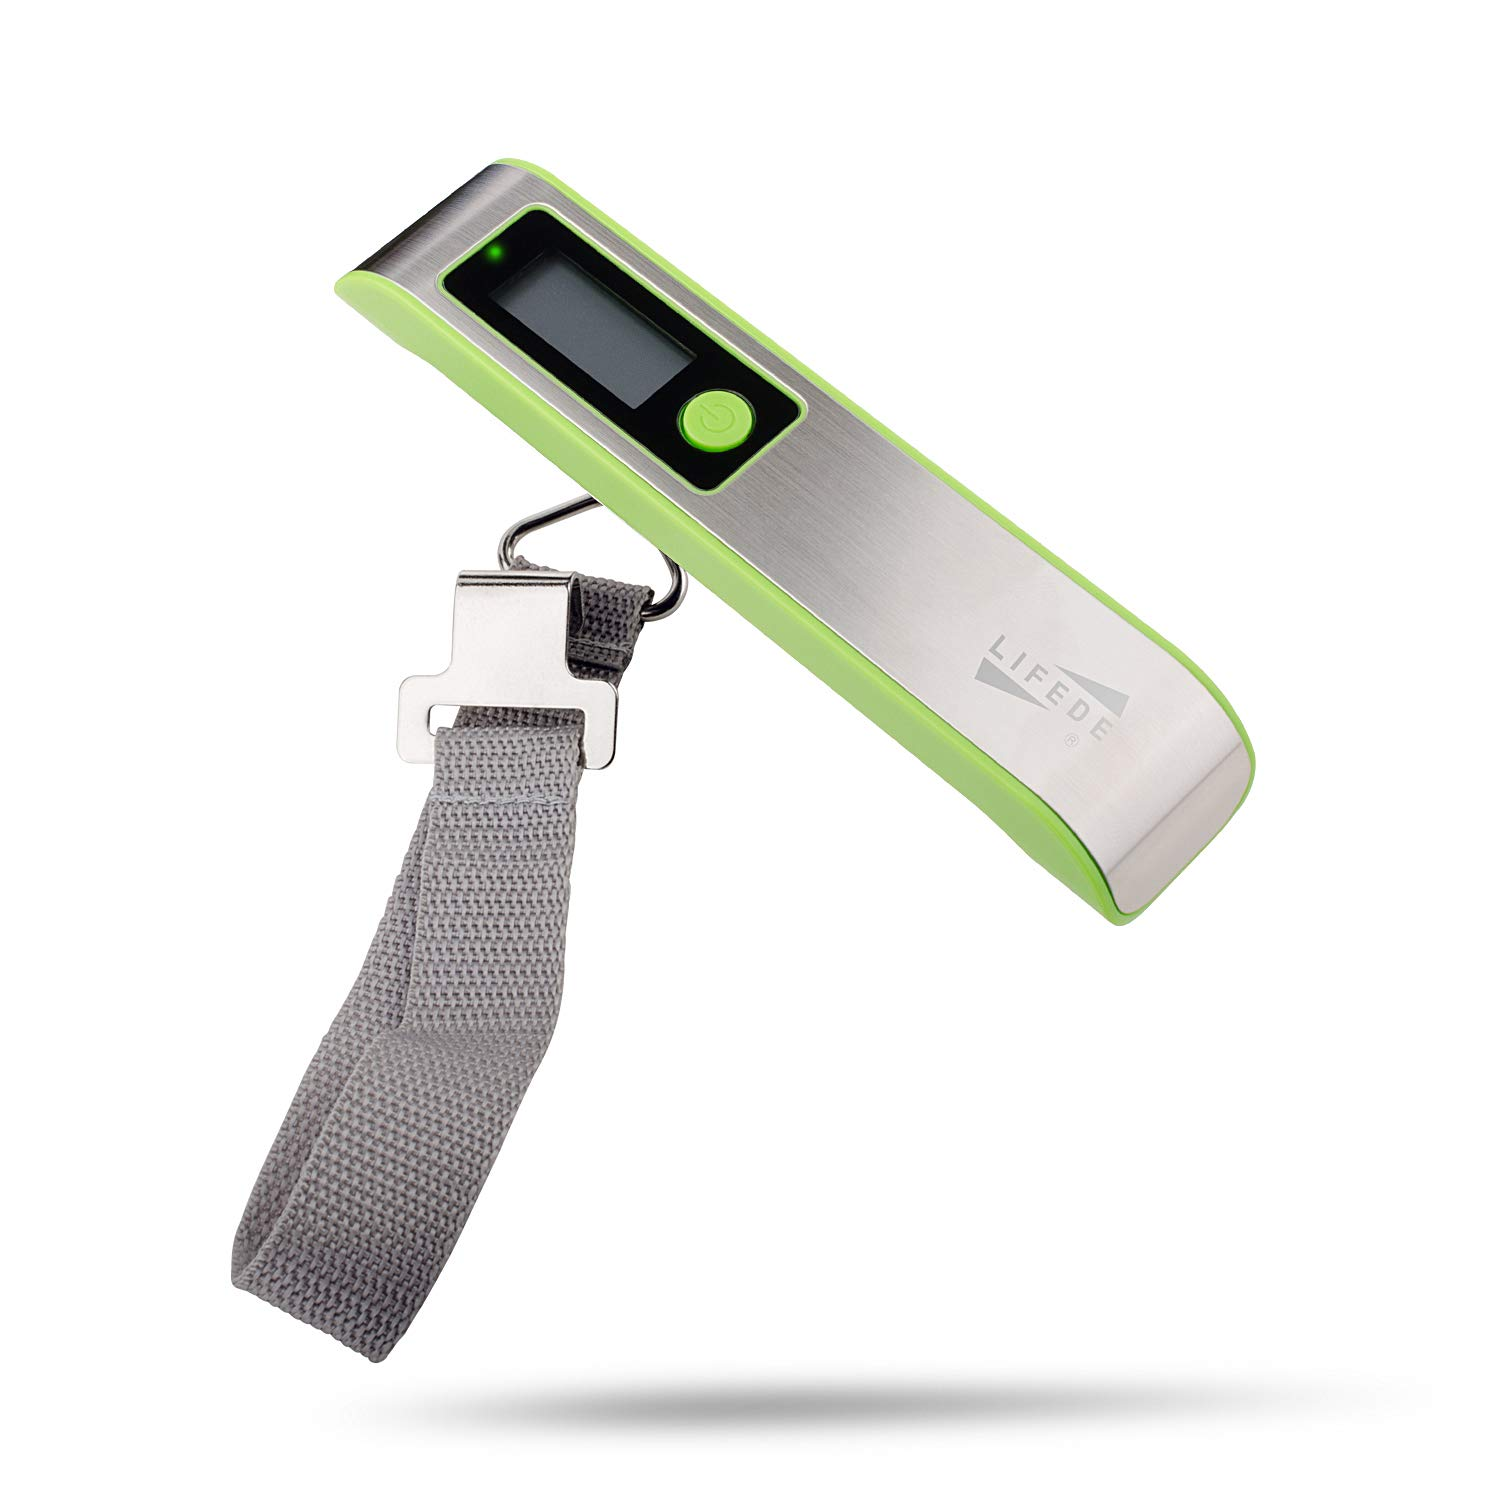 Digital Weight Luggage Scale, Travel Luggage Scale,110lbs,Stainless Steel and ABS,Gift for Traveler, Green.